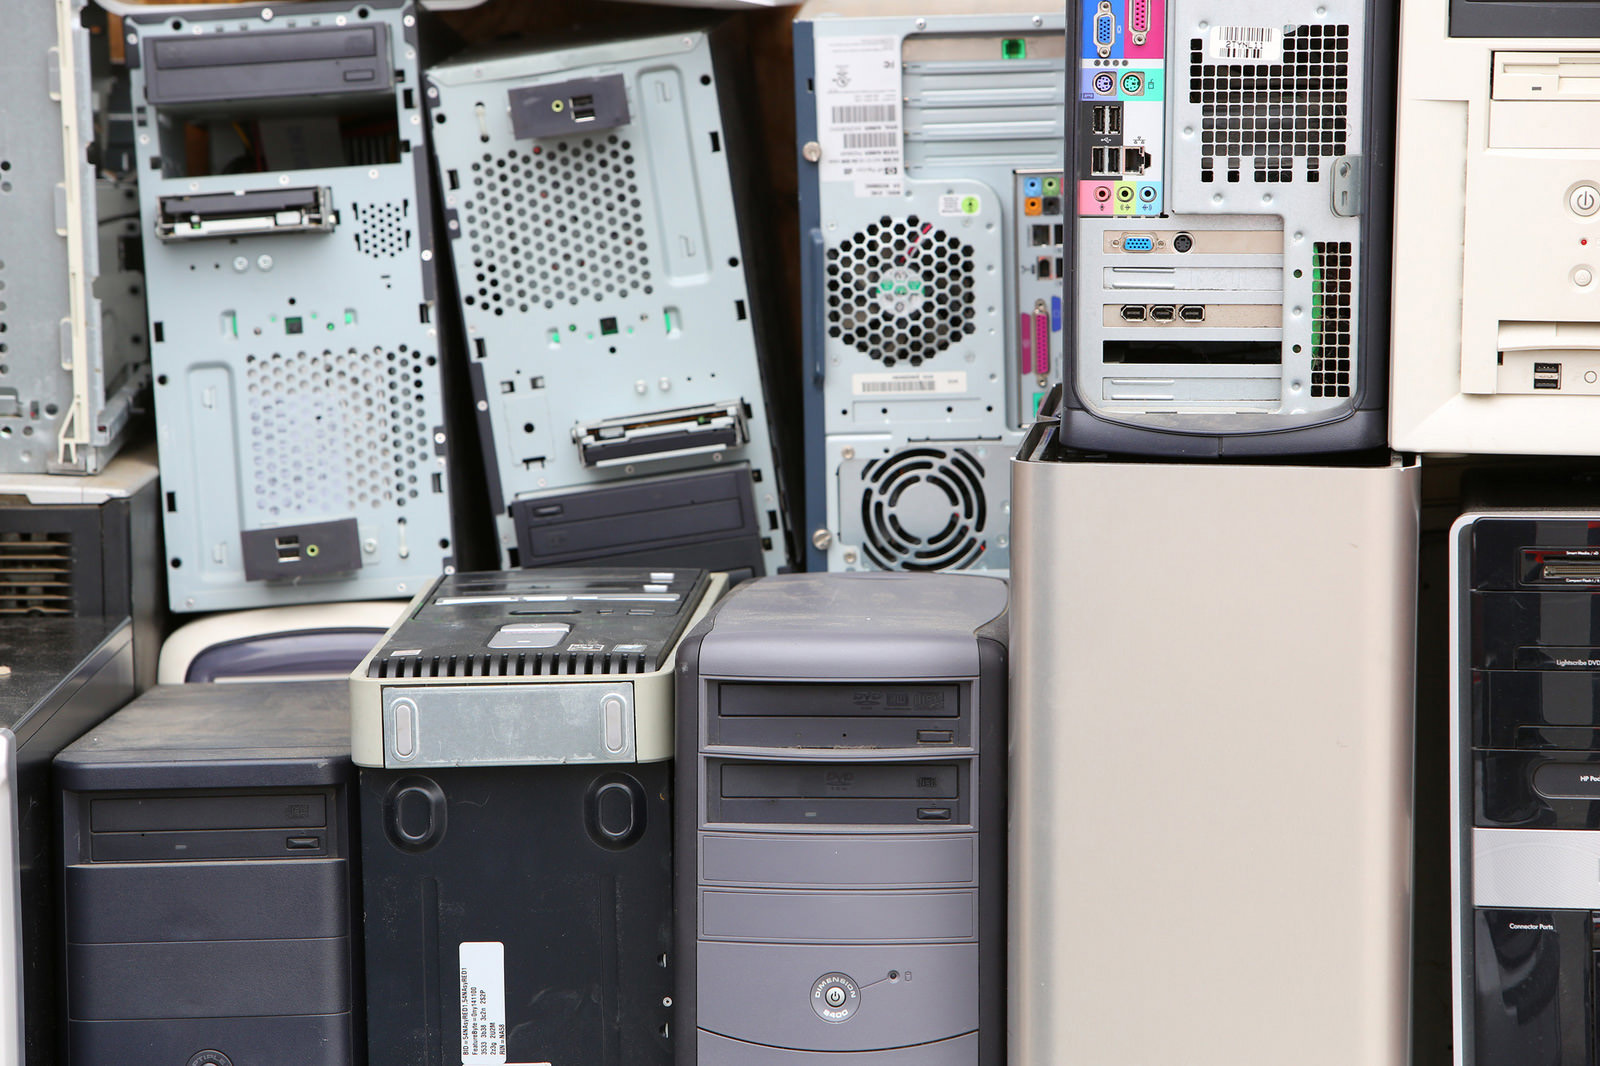 Republic Services makes it easy to recycle old electronics safely and responsibly.